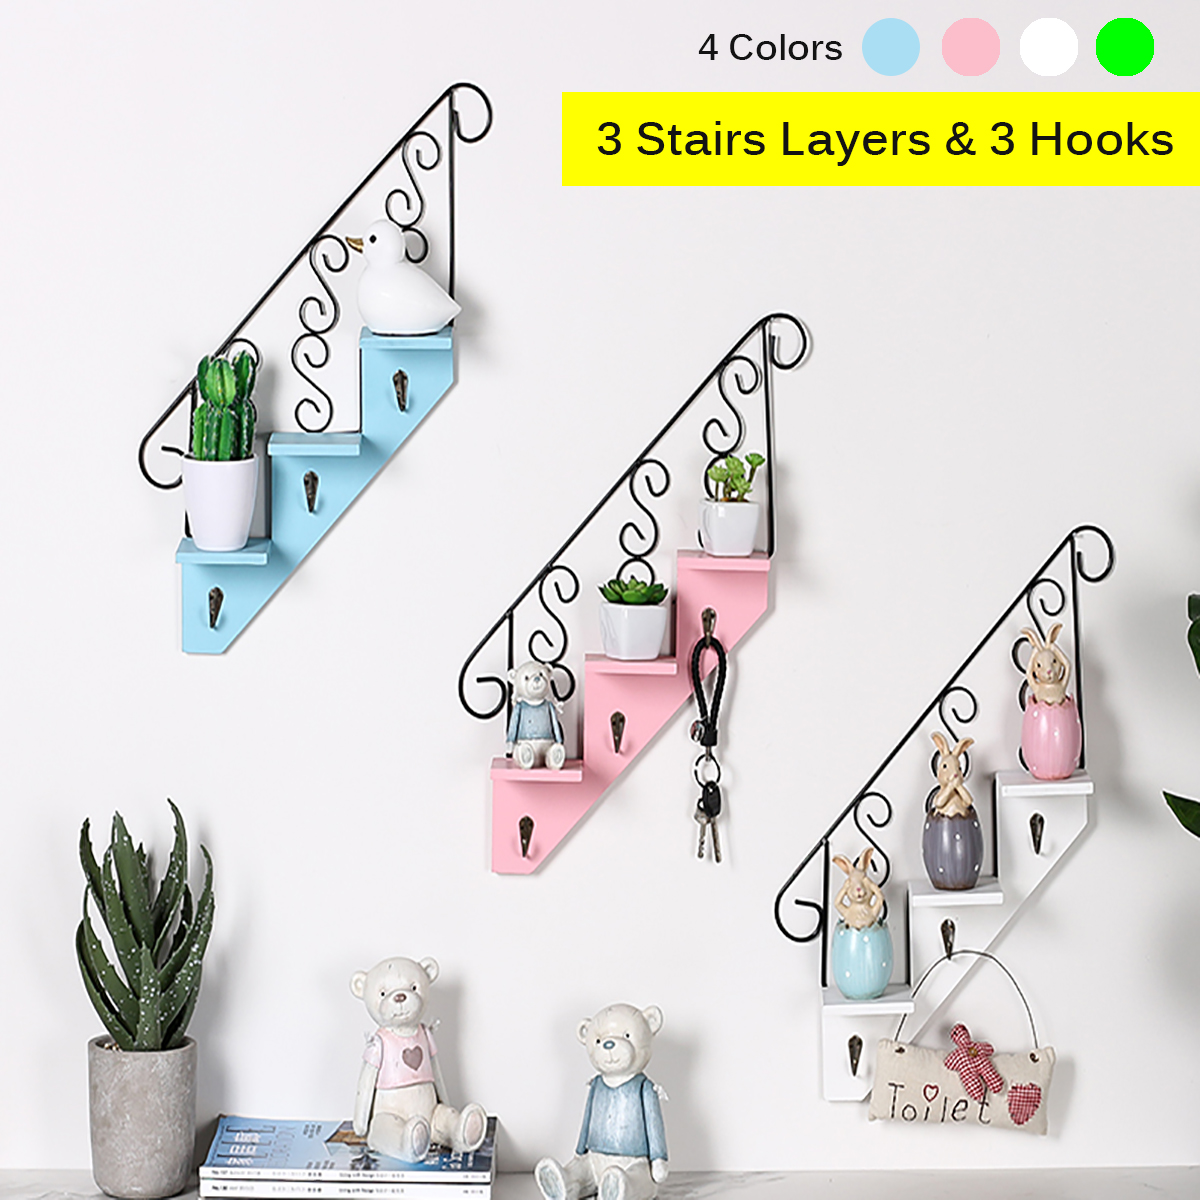 Iron Metal Wood Wall Shelf Stair Shaped Holder Storage Rack Home Office  Decor 3 Stairs Layers Decorate Room 3 Hooks For Storage In Storage Holders  U0026 Racks ...